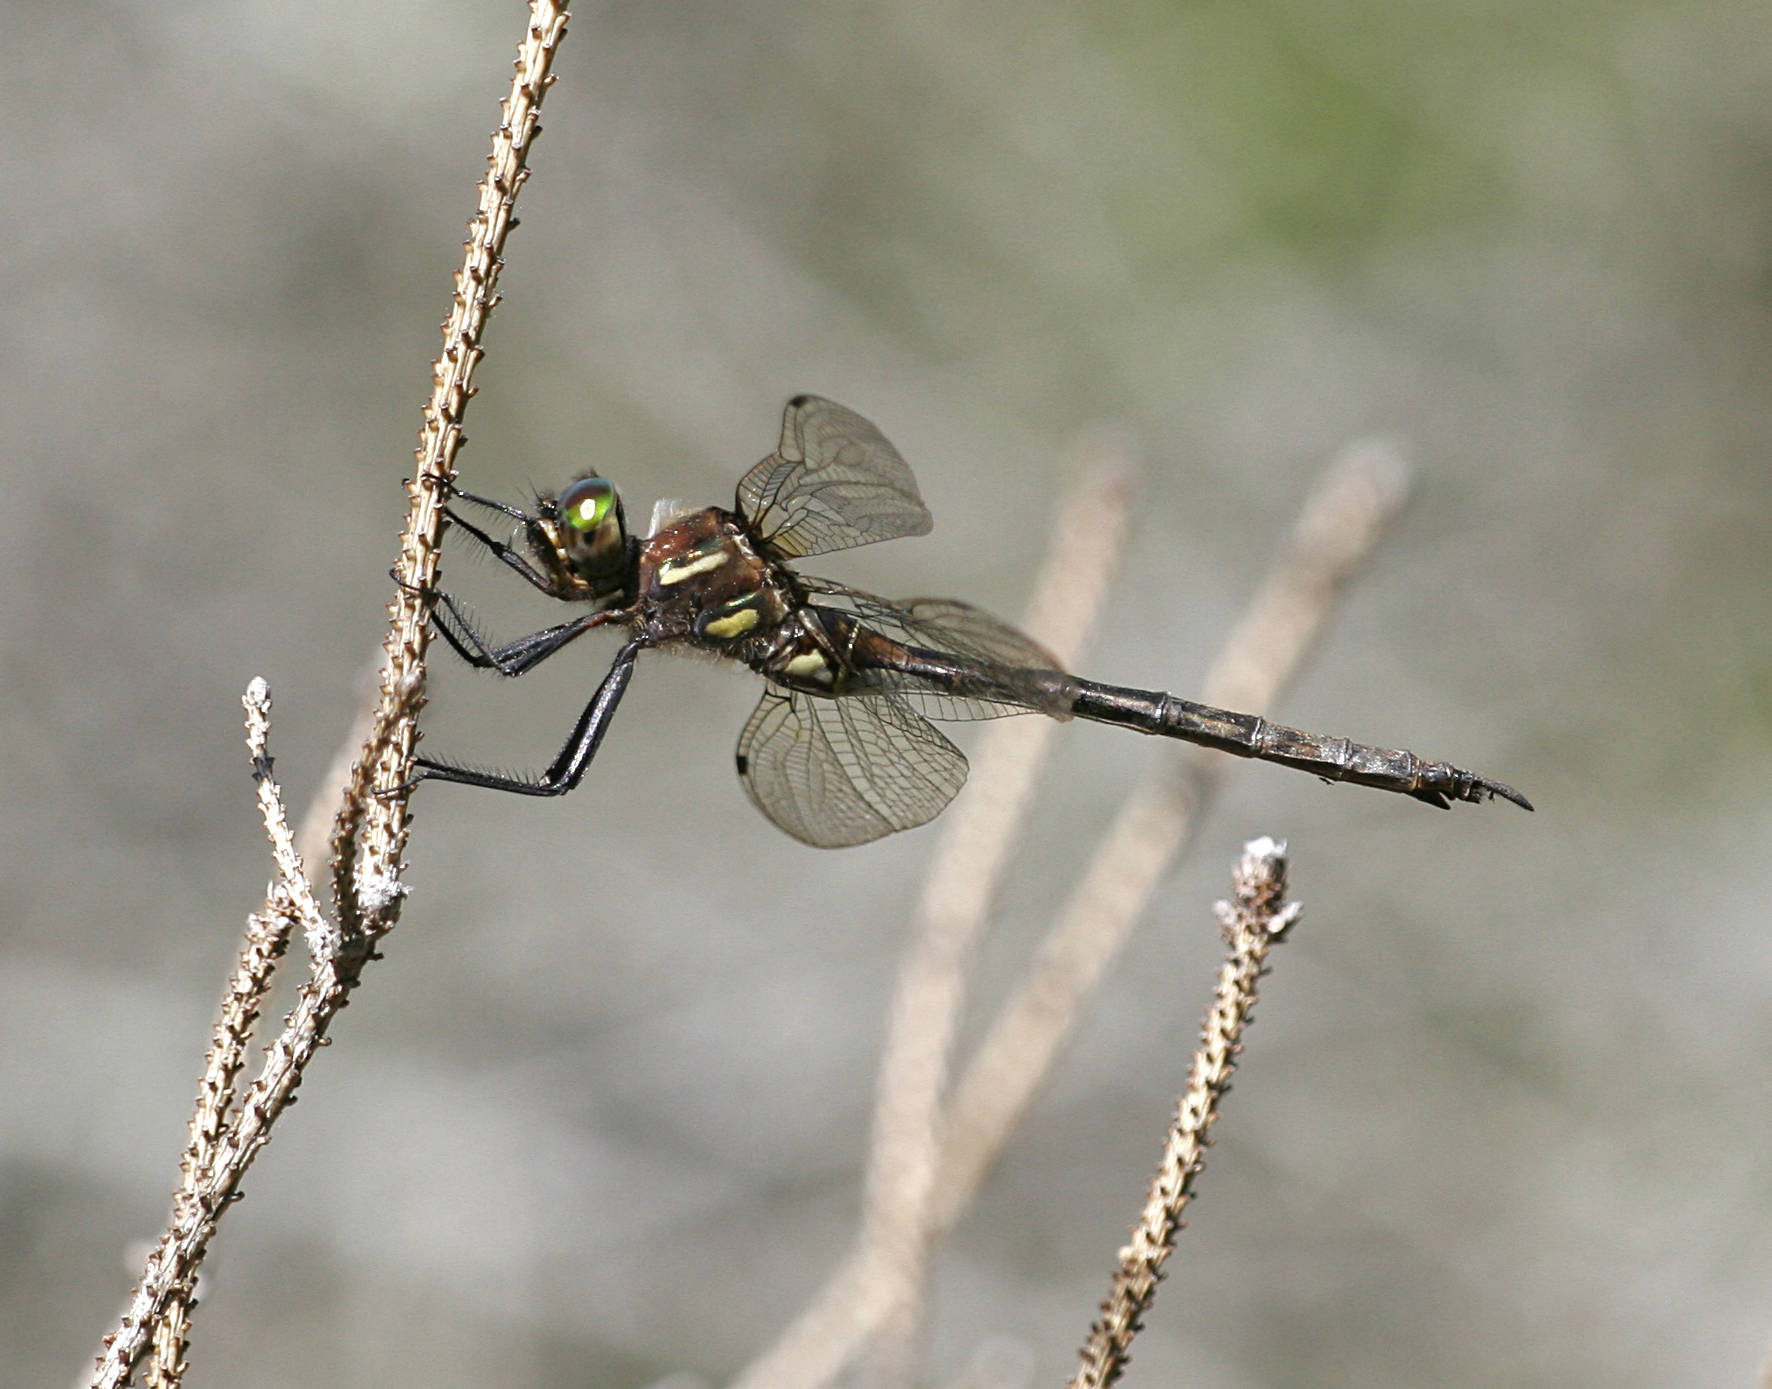 A brownish dragonfly holds on to a bare twig.